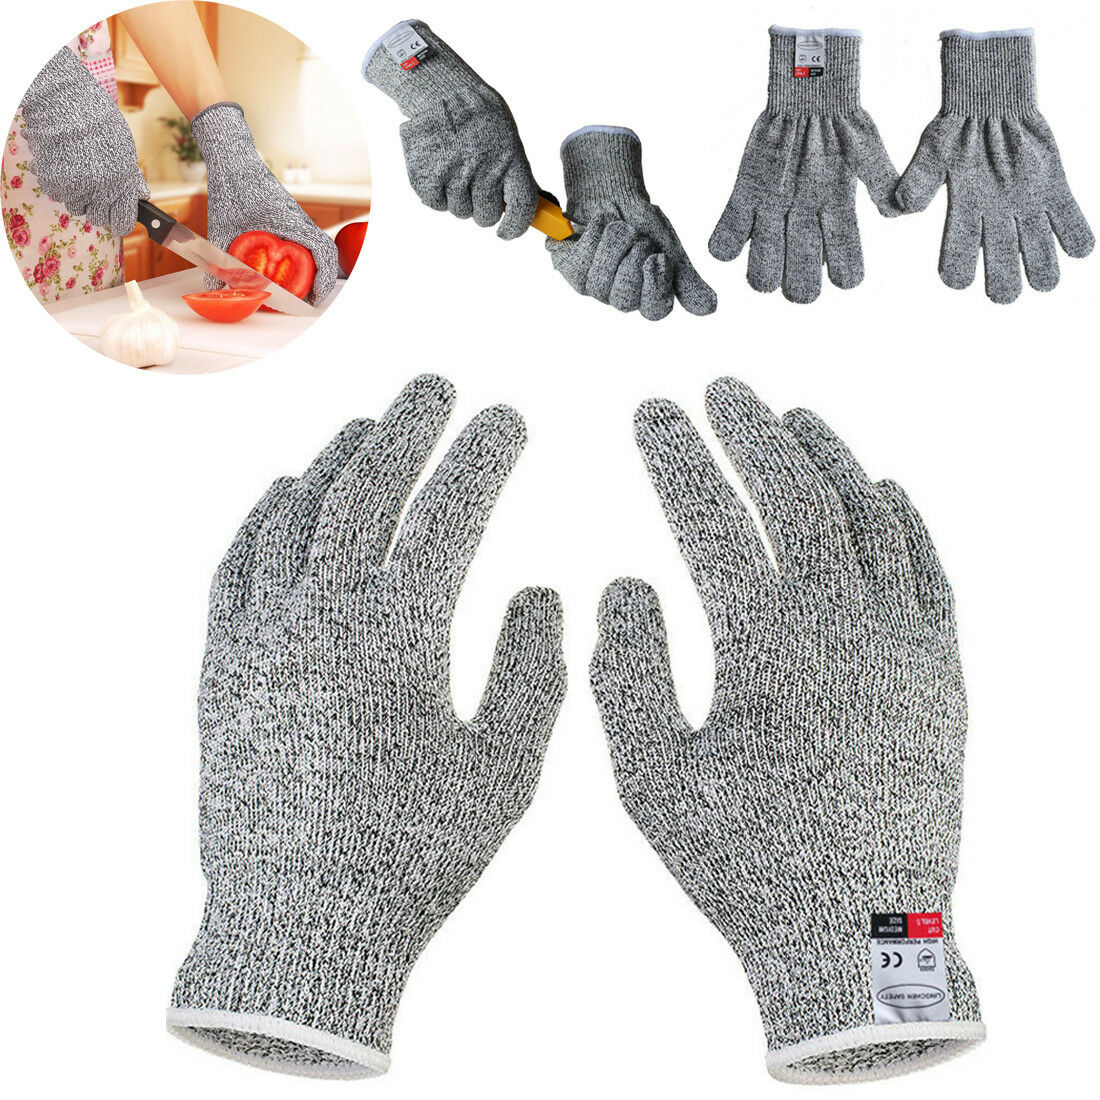 Details about Cut Resistant Gloves Anti-Cutting Food Grade Level 5 Kitchen  Butcher Protection